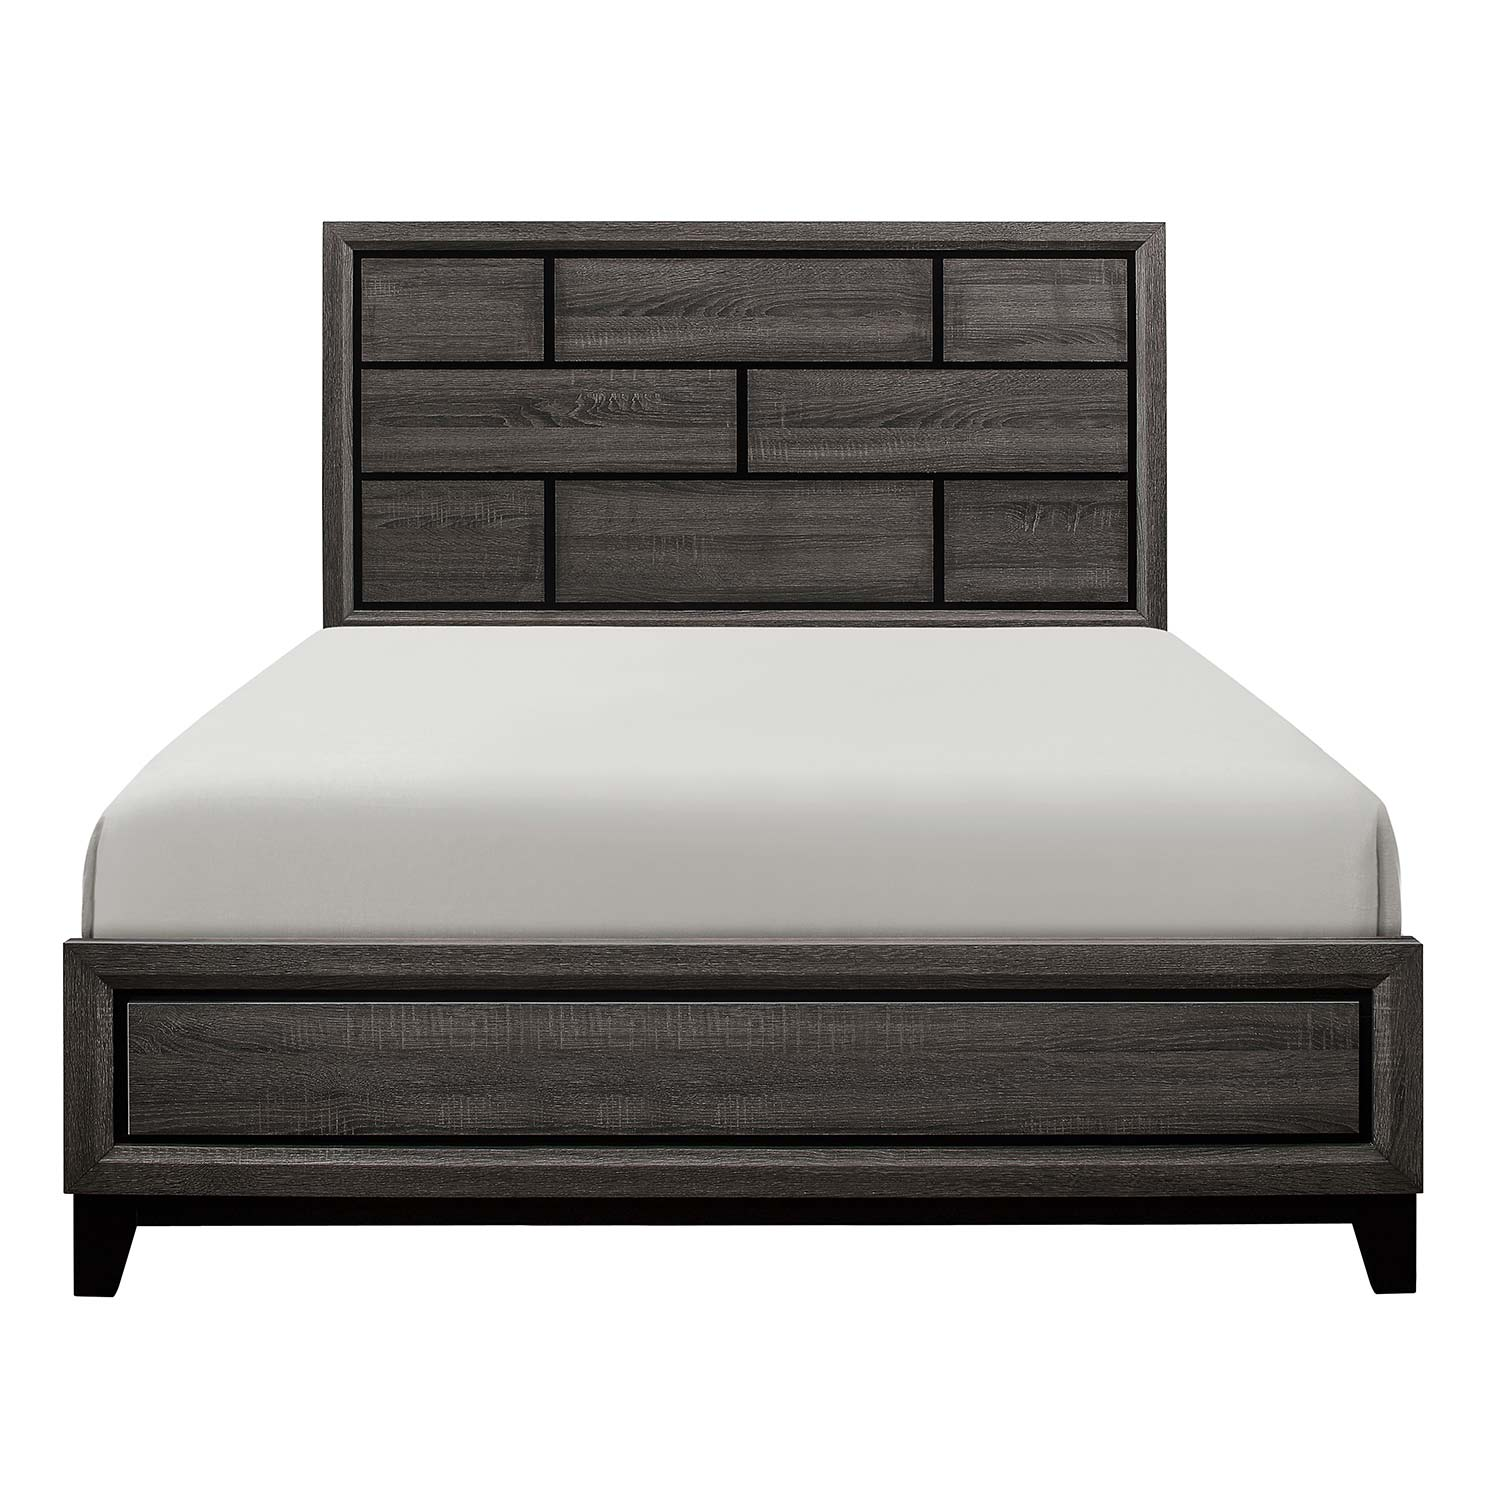 Homelegance Davi Bed - Gray